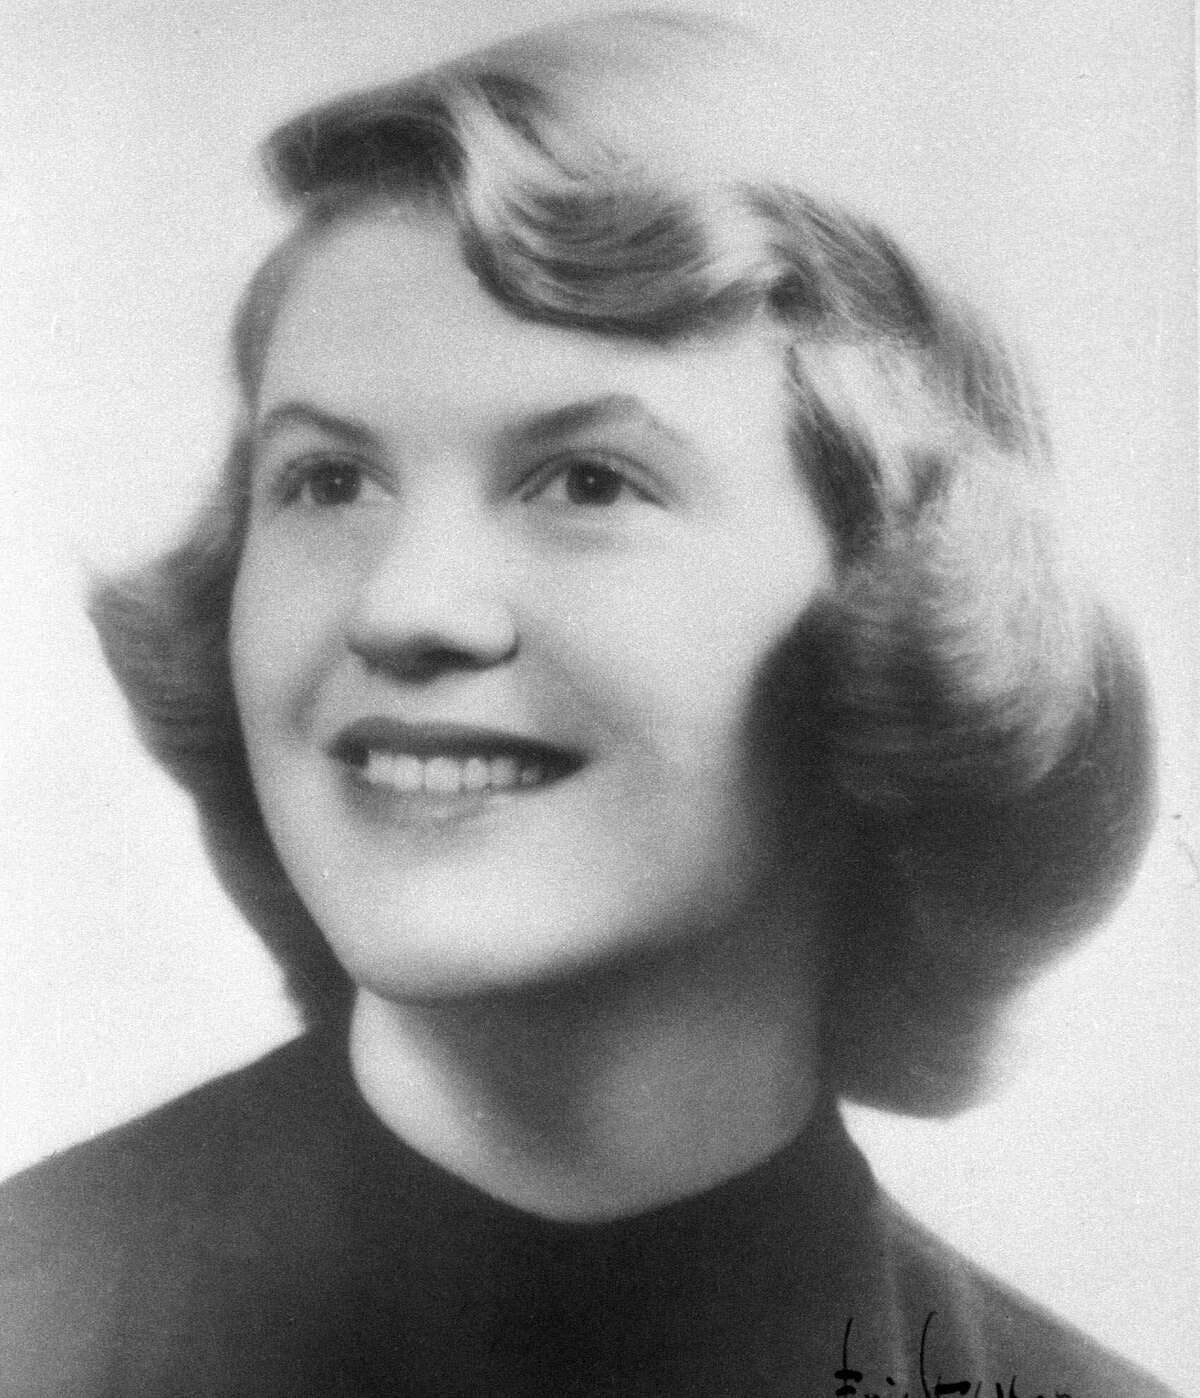 Plath in 1955, photographed at Smith College in Northampton, Mass.